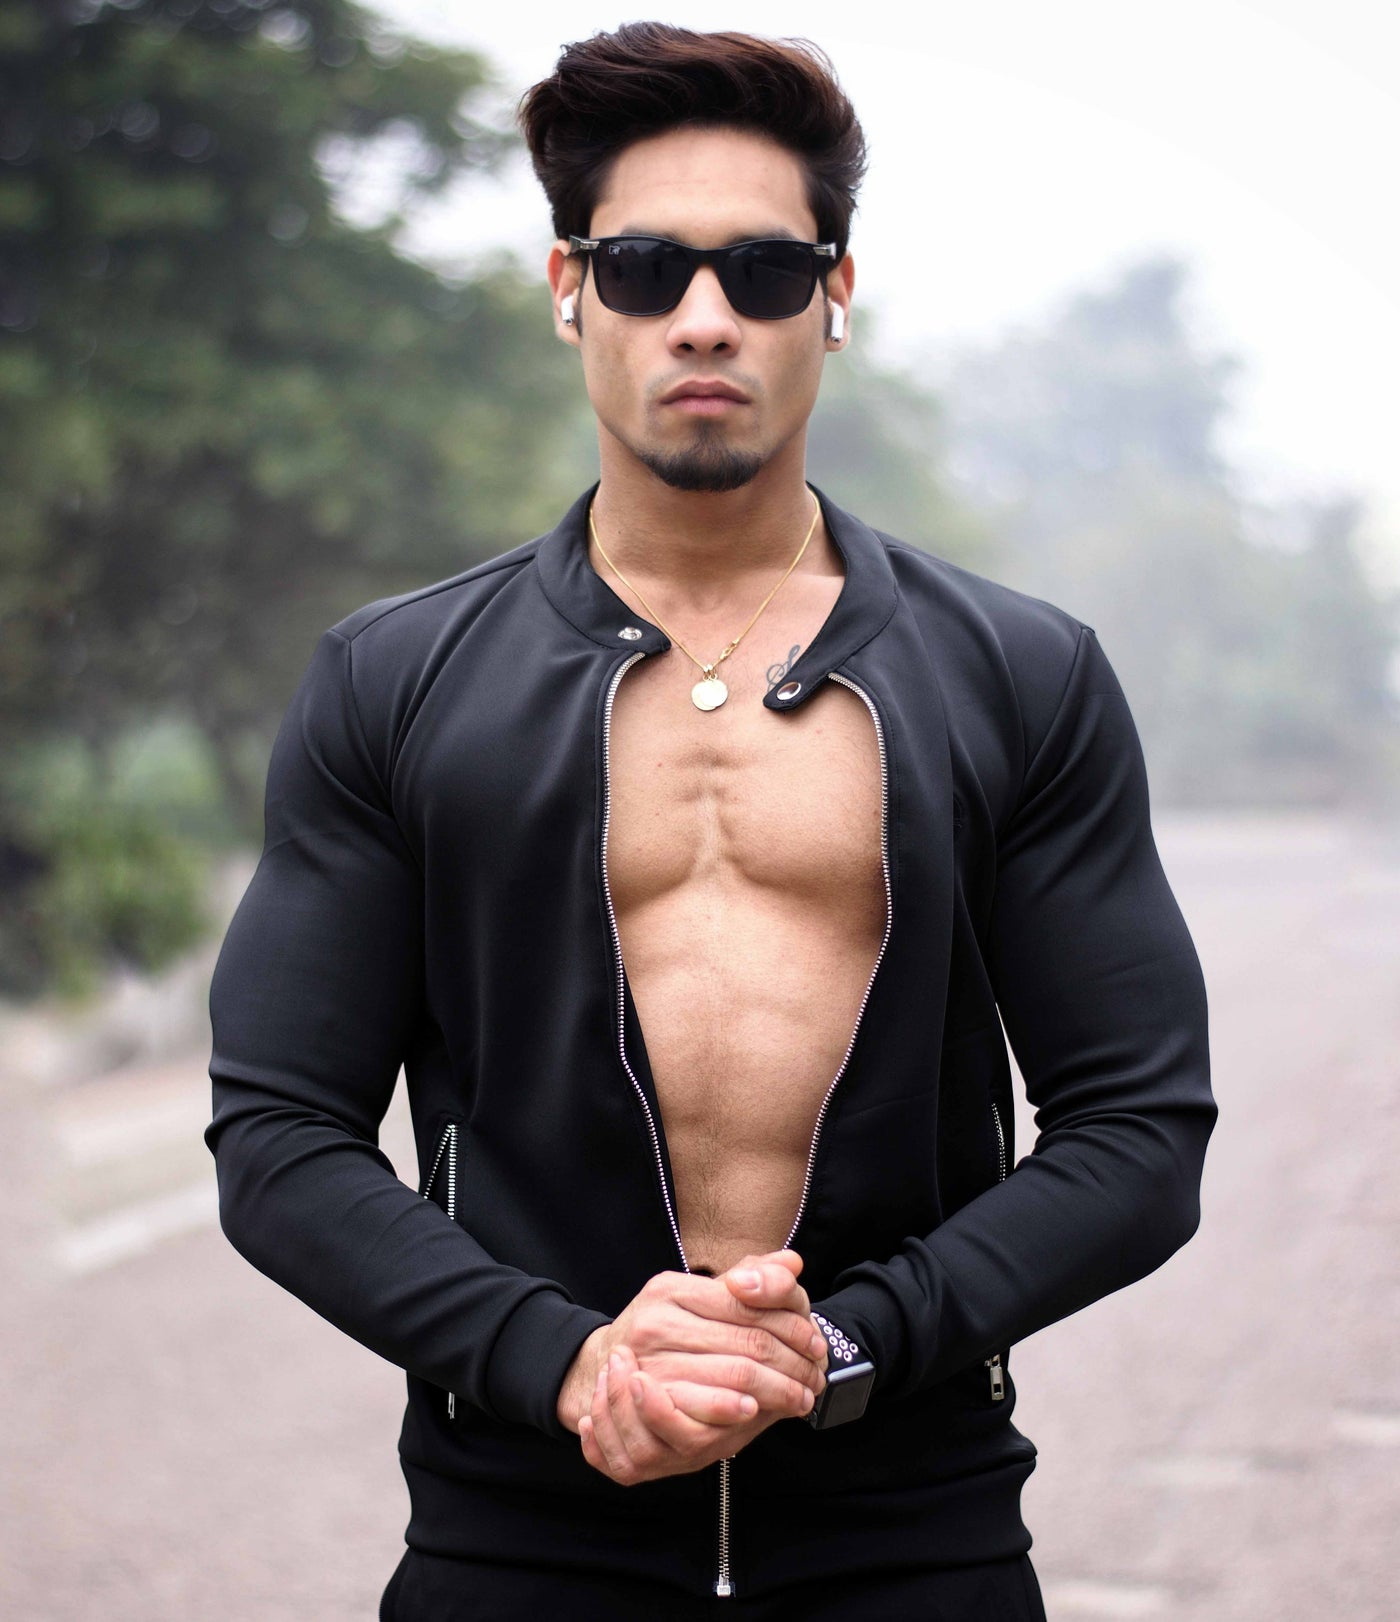 Devoted Sweatshirt Hoodie Black - Muscle Fit Gym wear & sports apparel - Mohit Vijayran (@Mohit.vijayran)